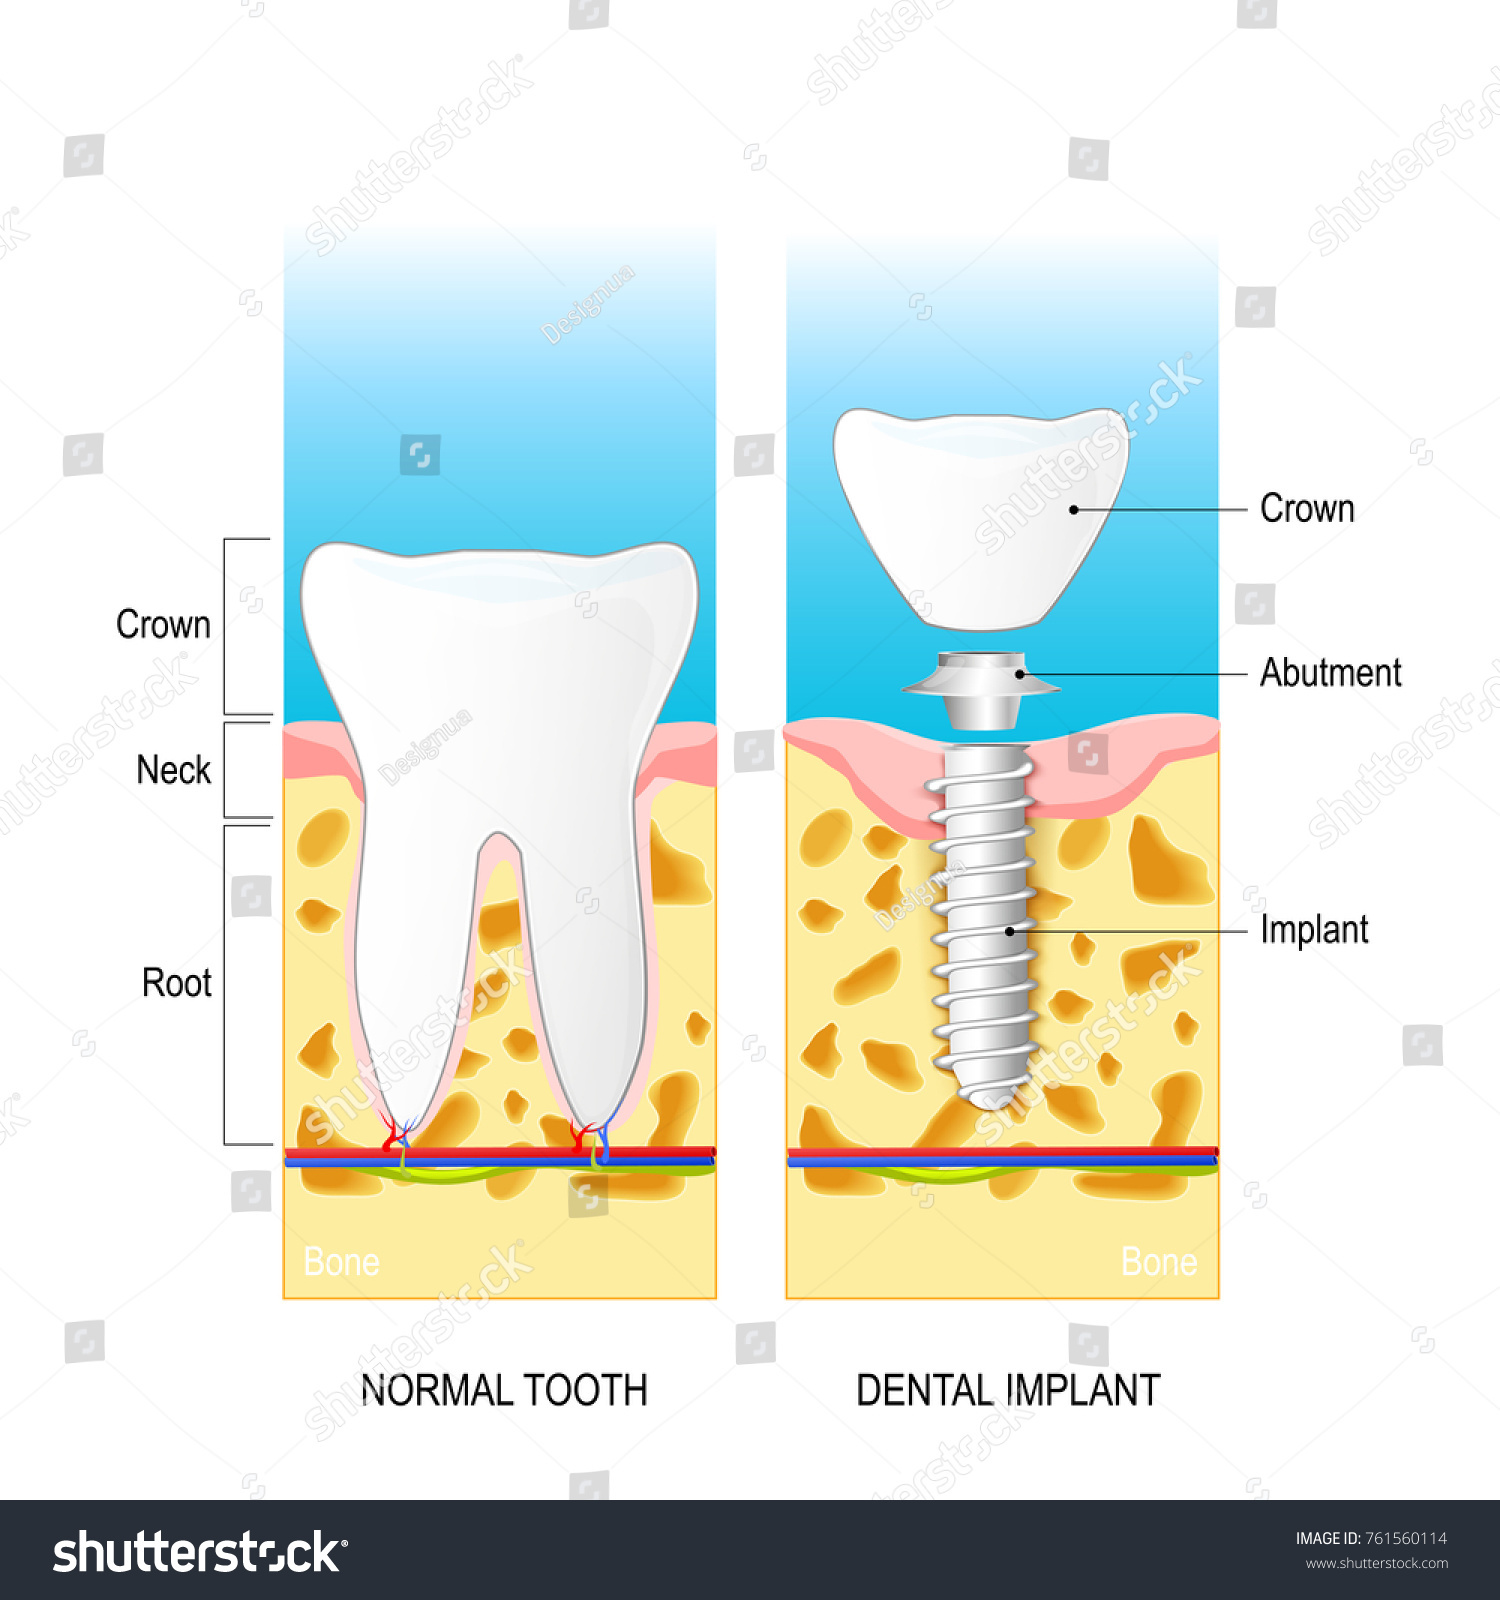 Dental Implant Normal Human Tooth Prosthesis Stock Photo (Photo ...